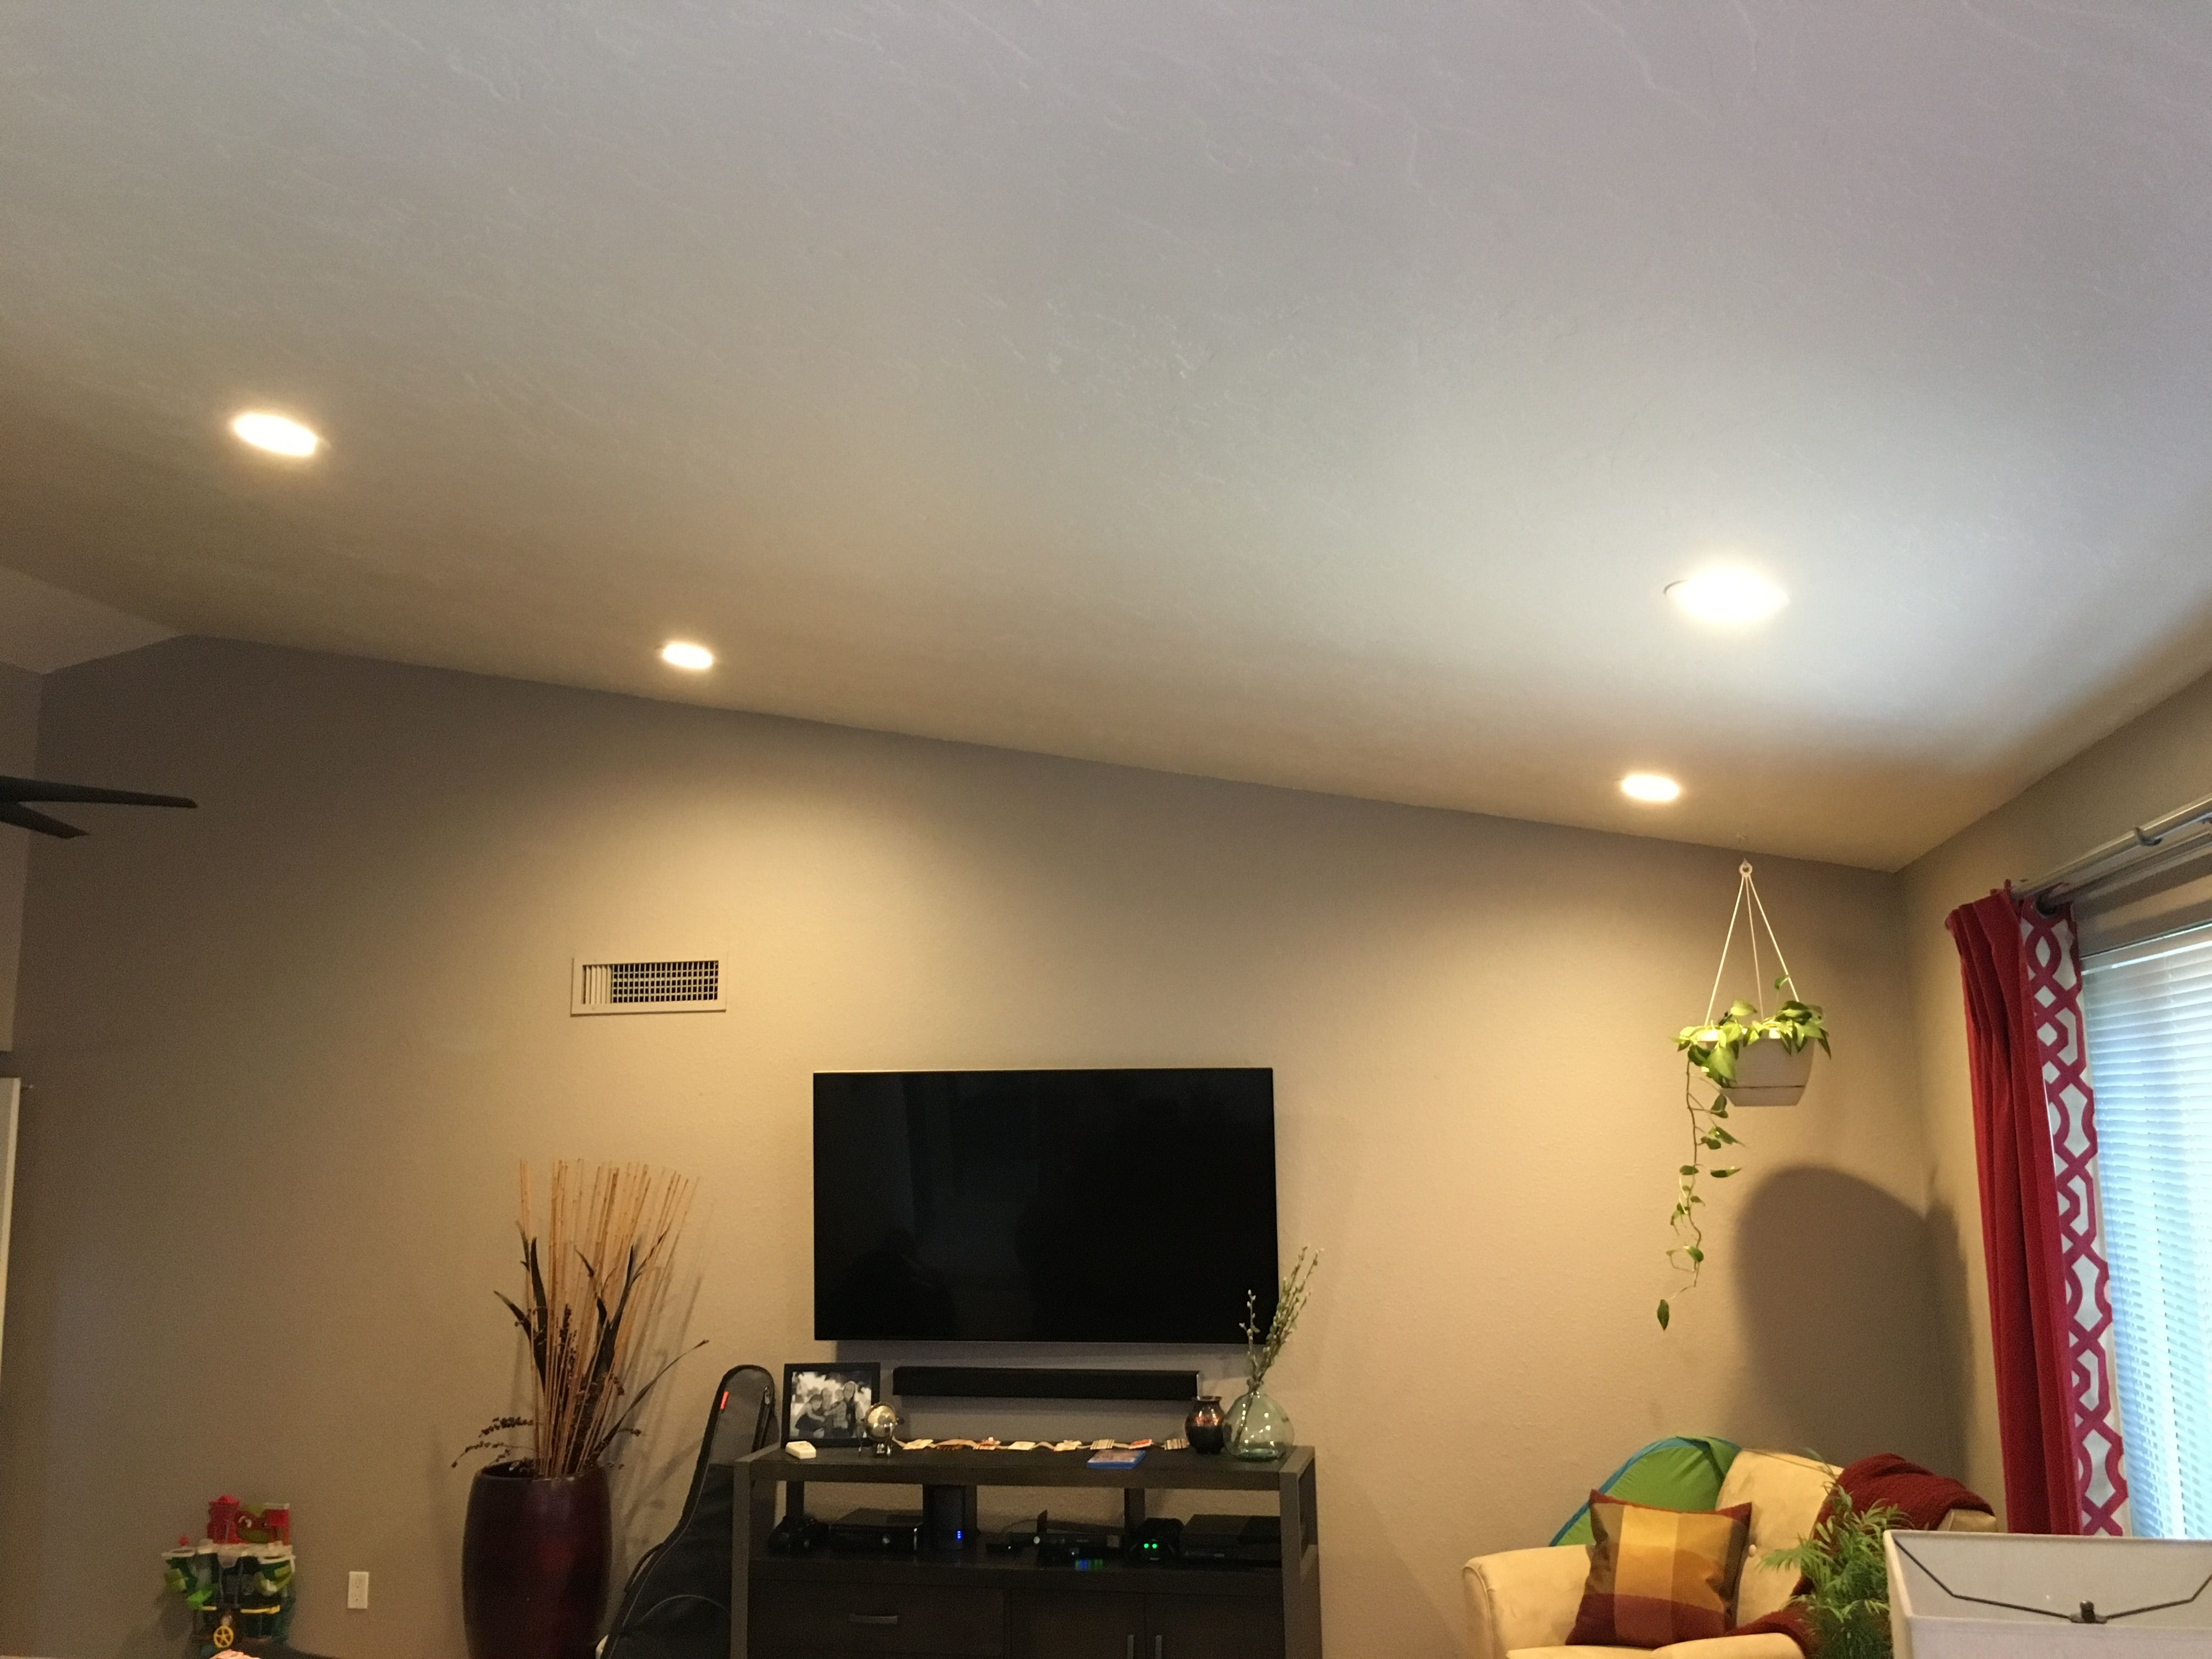 Family room Installed 4x 6-inch 2700k LED recessed lights converted one unused switch spliced in attic. & Family room Installed 4x 6-inch 2700k LED recessed lights ...